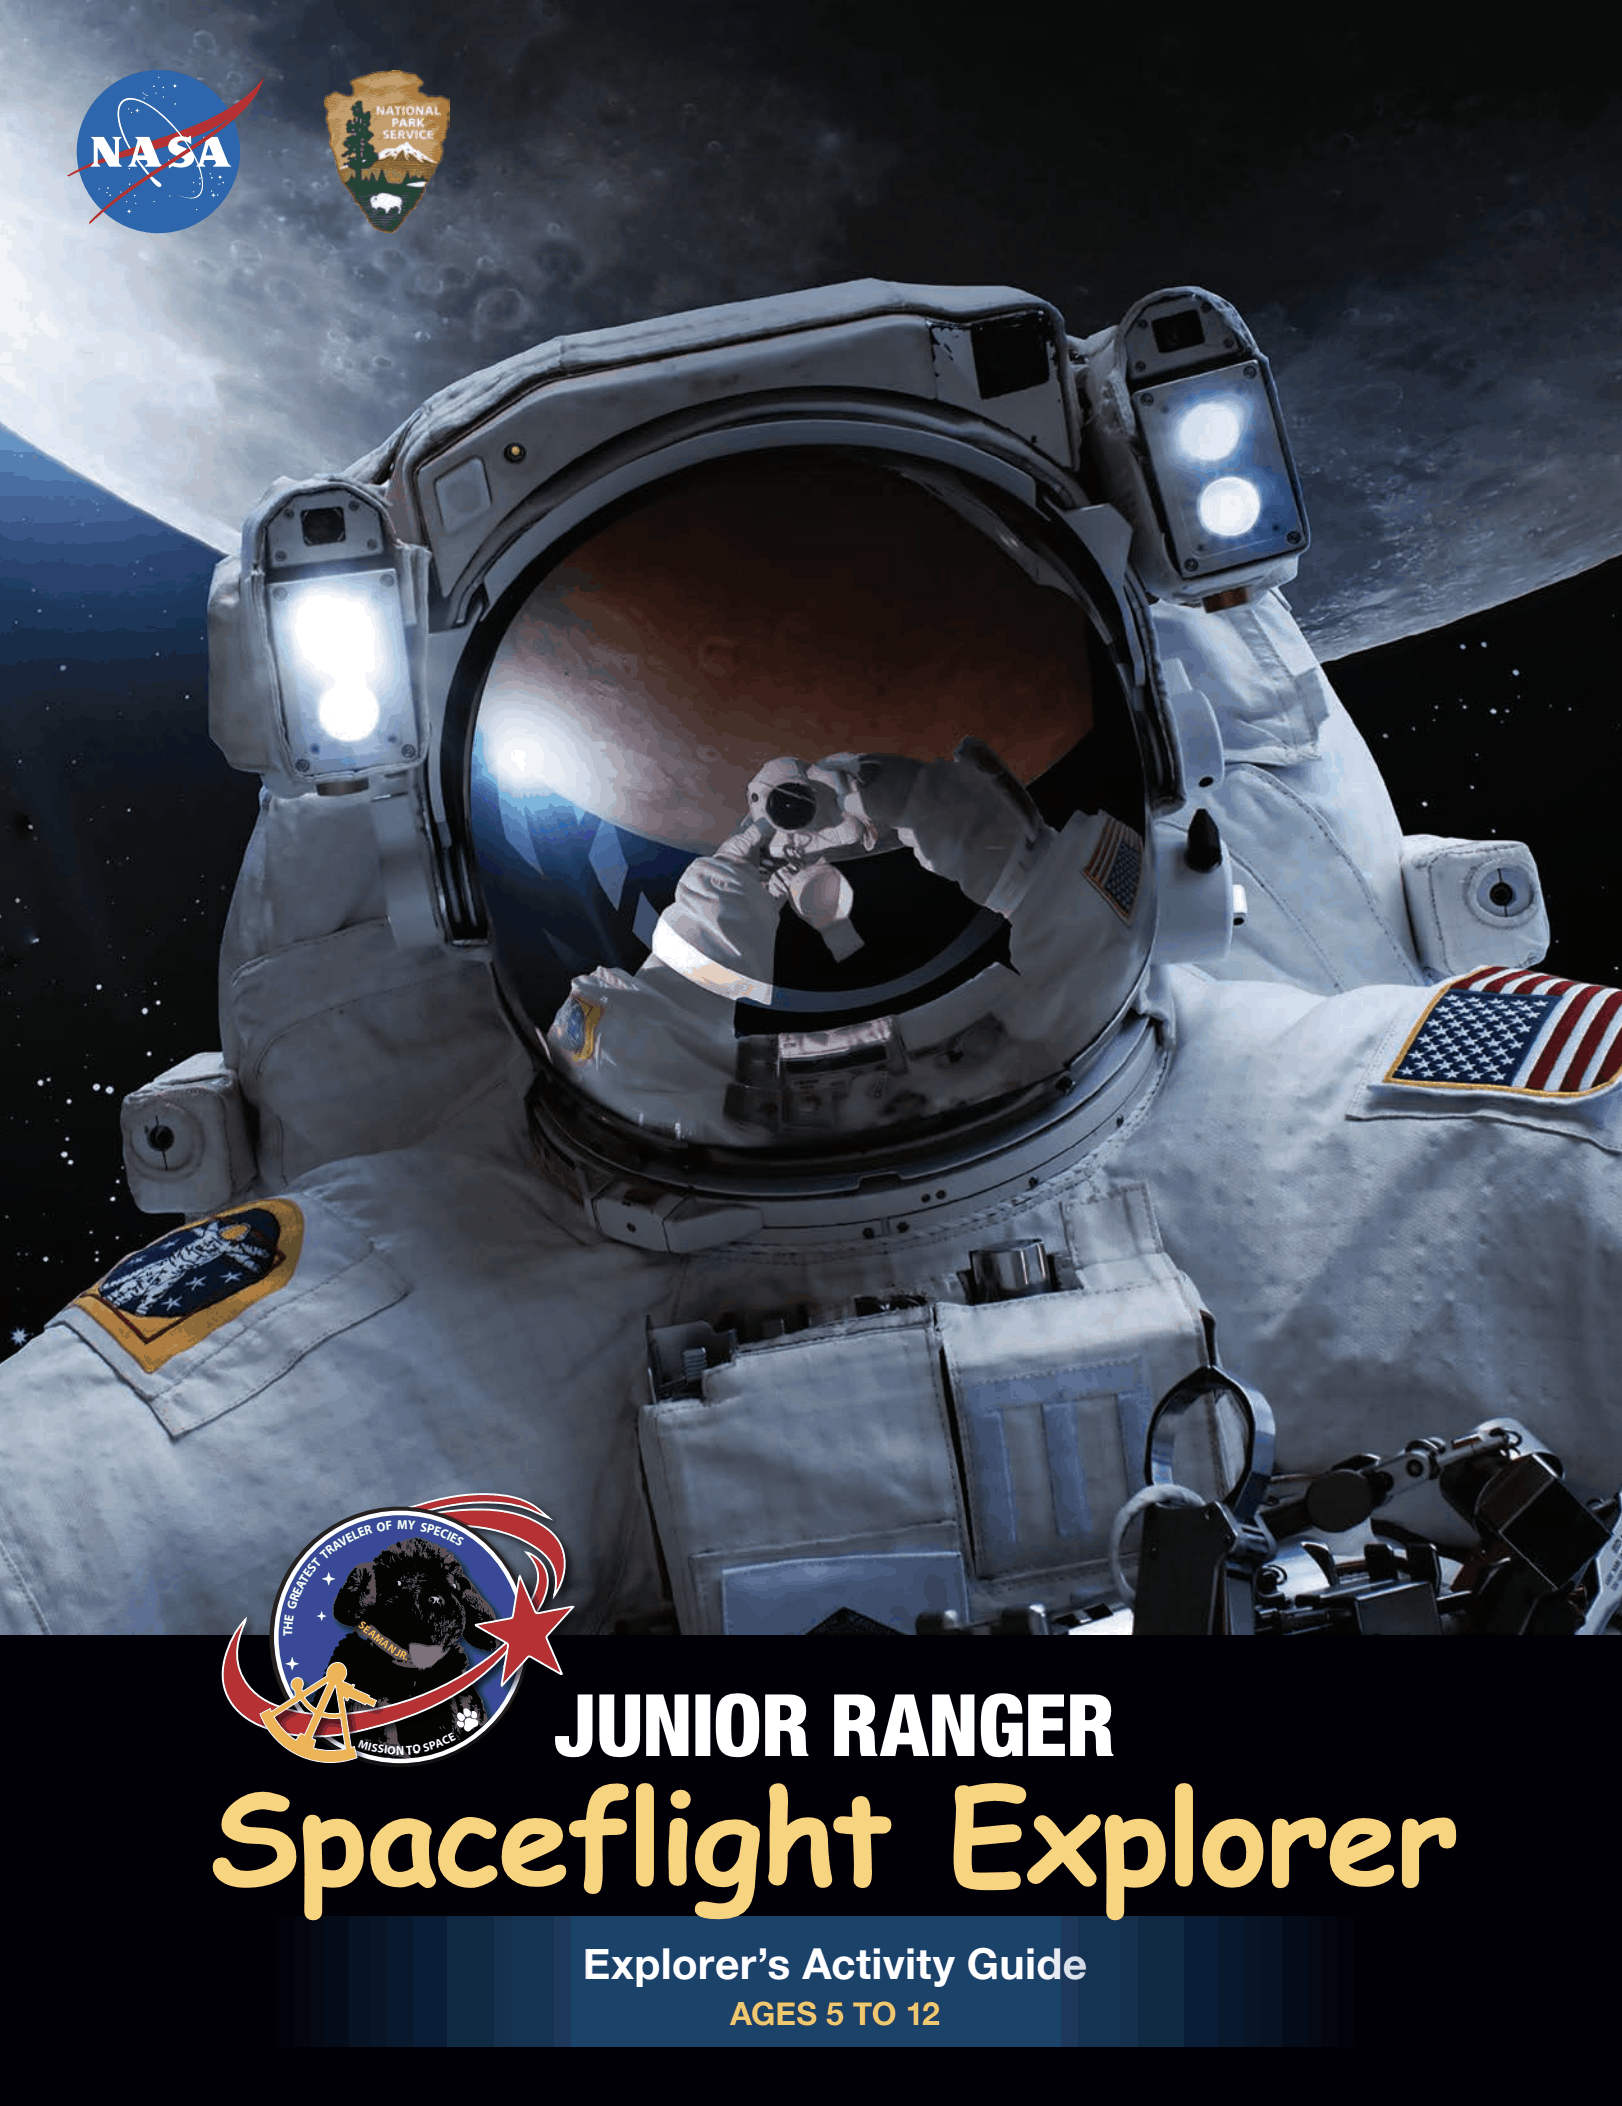 Junior Ranger Spaceflight Explorer